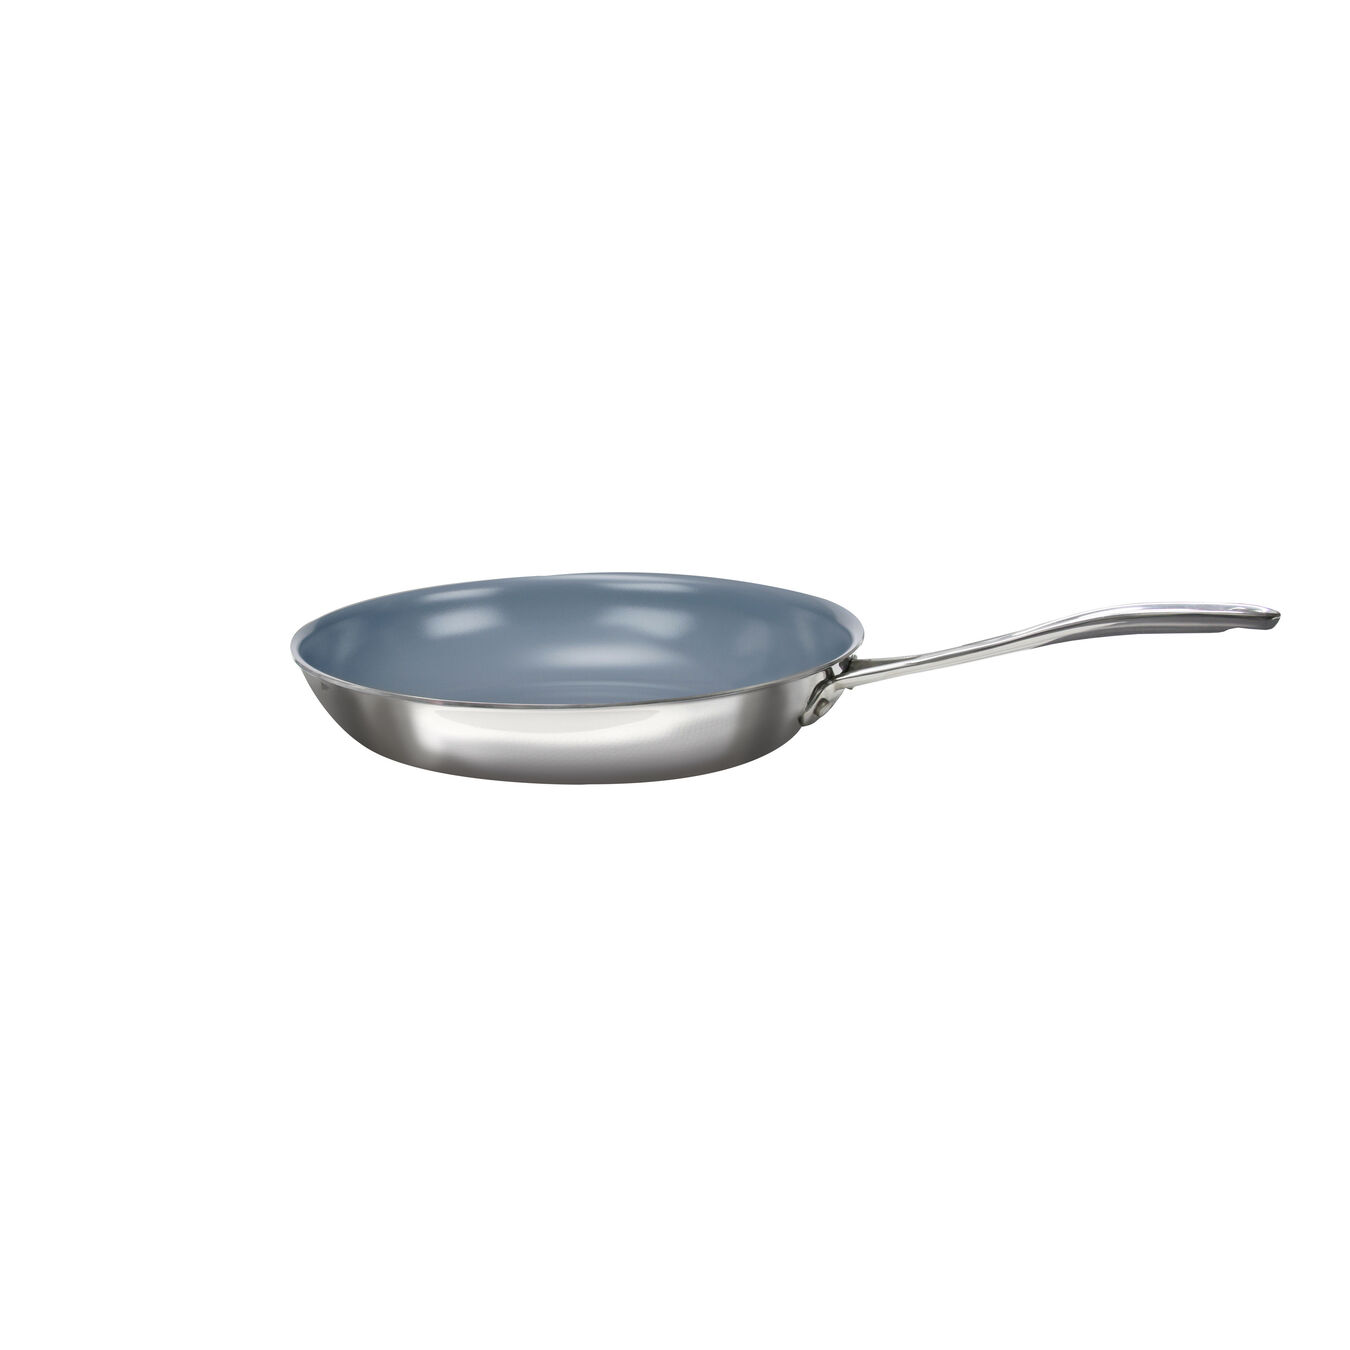 20 cm / 8 inch 18/10 Stainless Steel Frying pan,,large 1